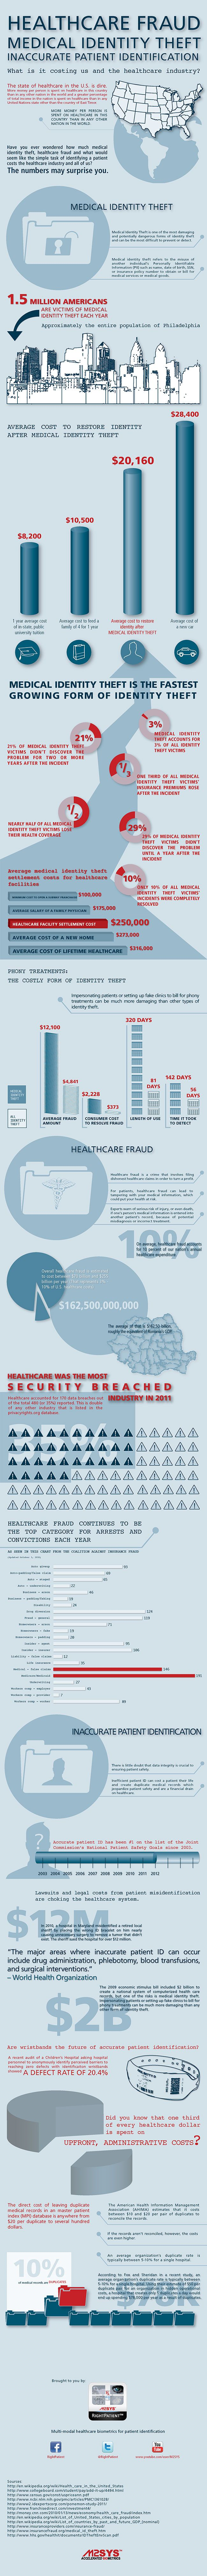 Infographics on Medical Identity Theft & Healthcare Fraud : The Effect of Fraud, Theft and Inaccurate Patient Identification on Healthcare